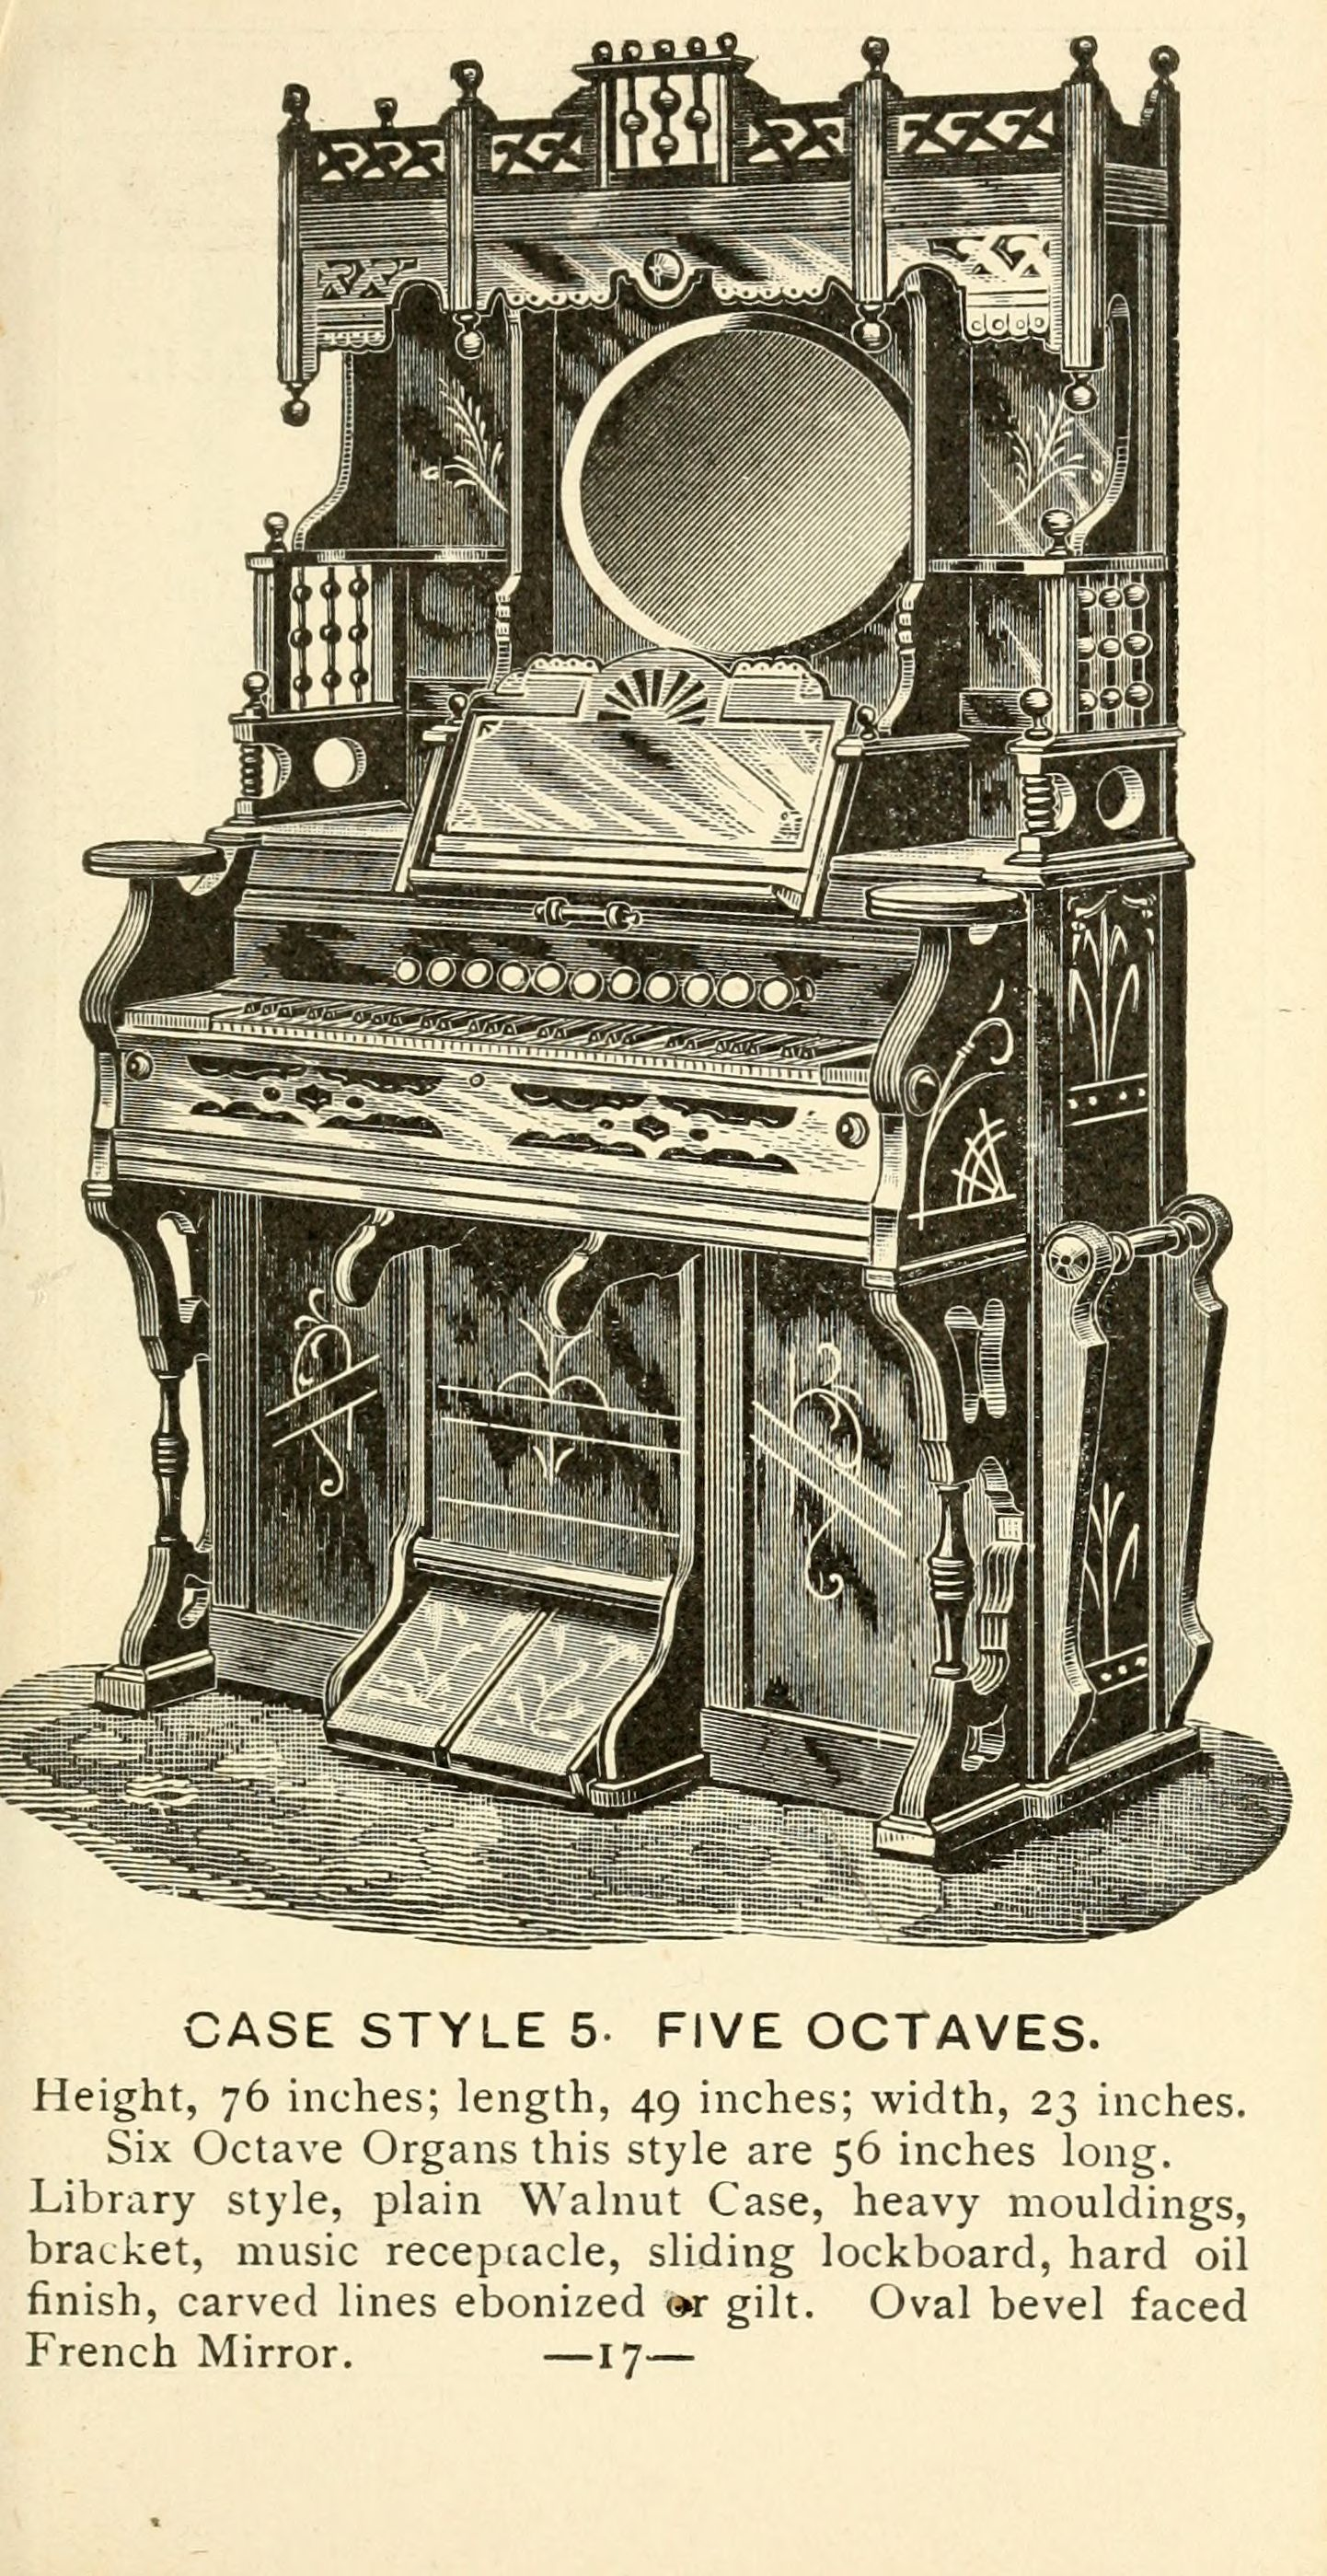 Hall Stands and Parlor Organs: Status Symbols in the 19th Century Home